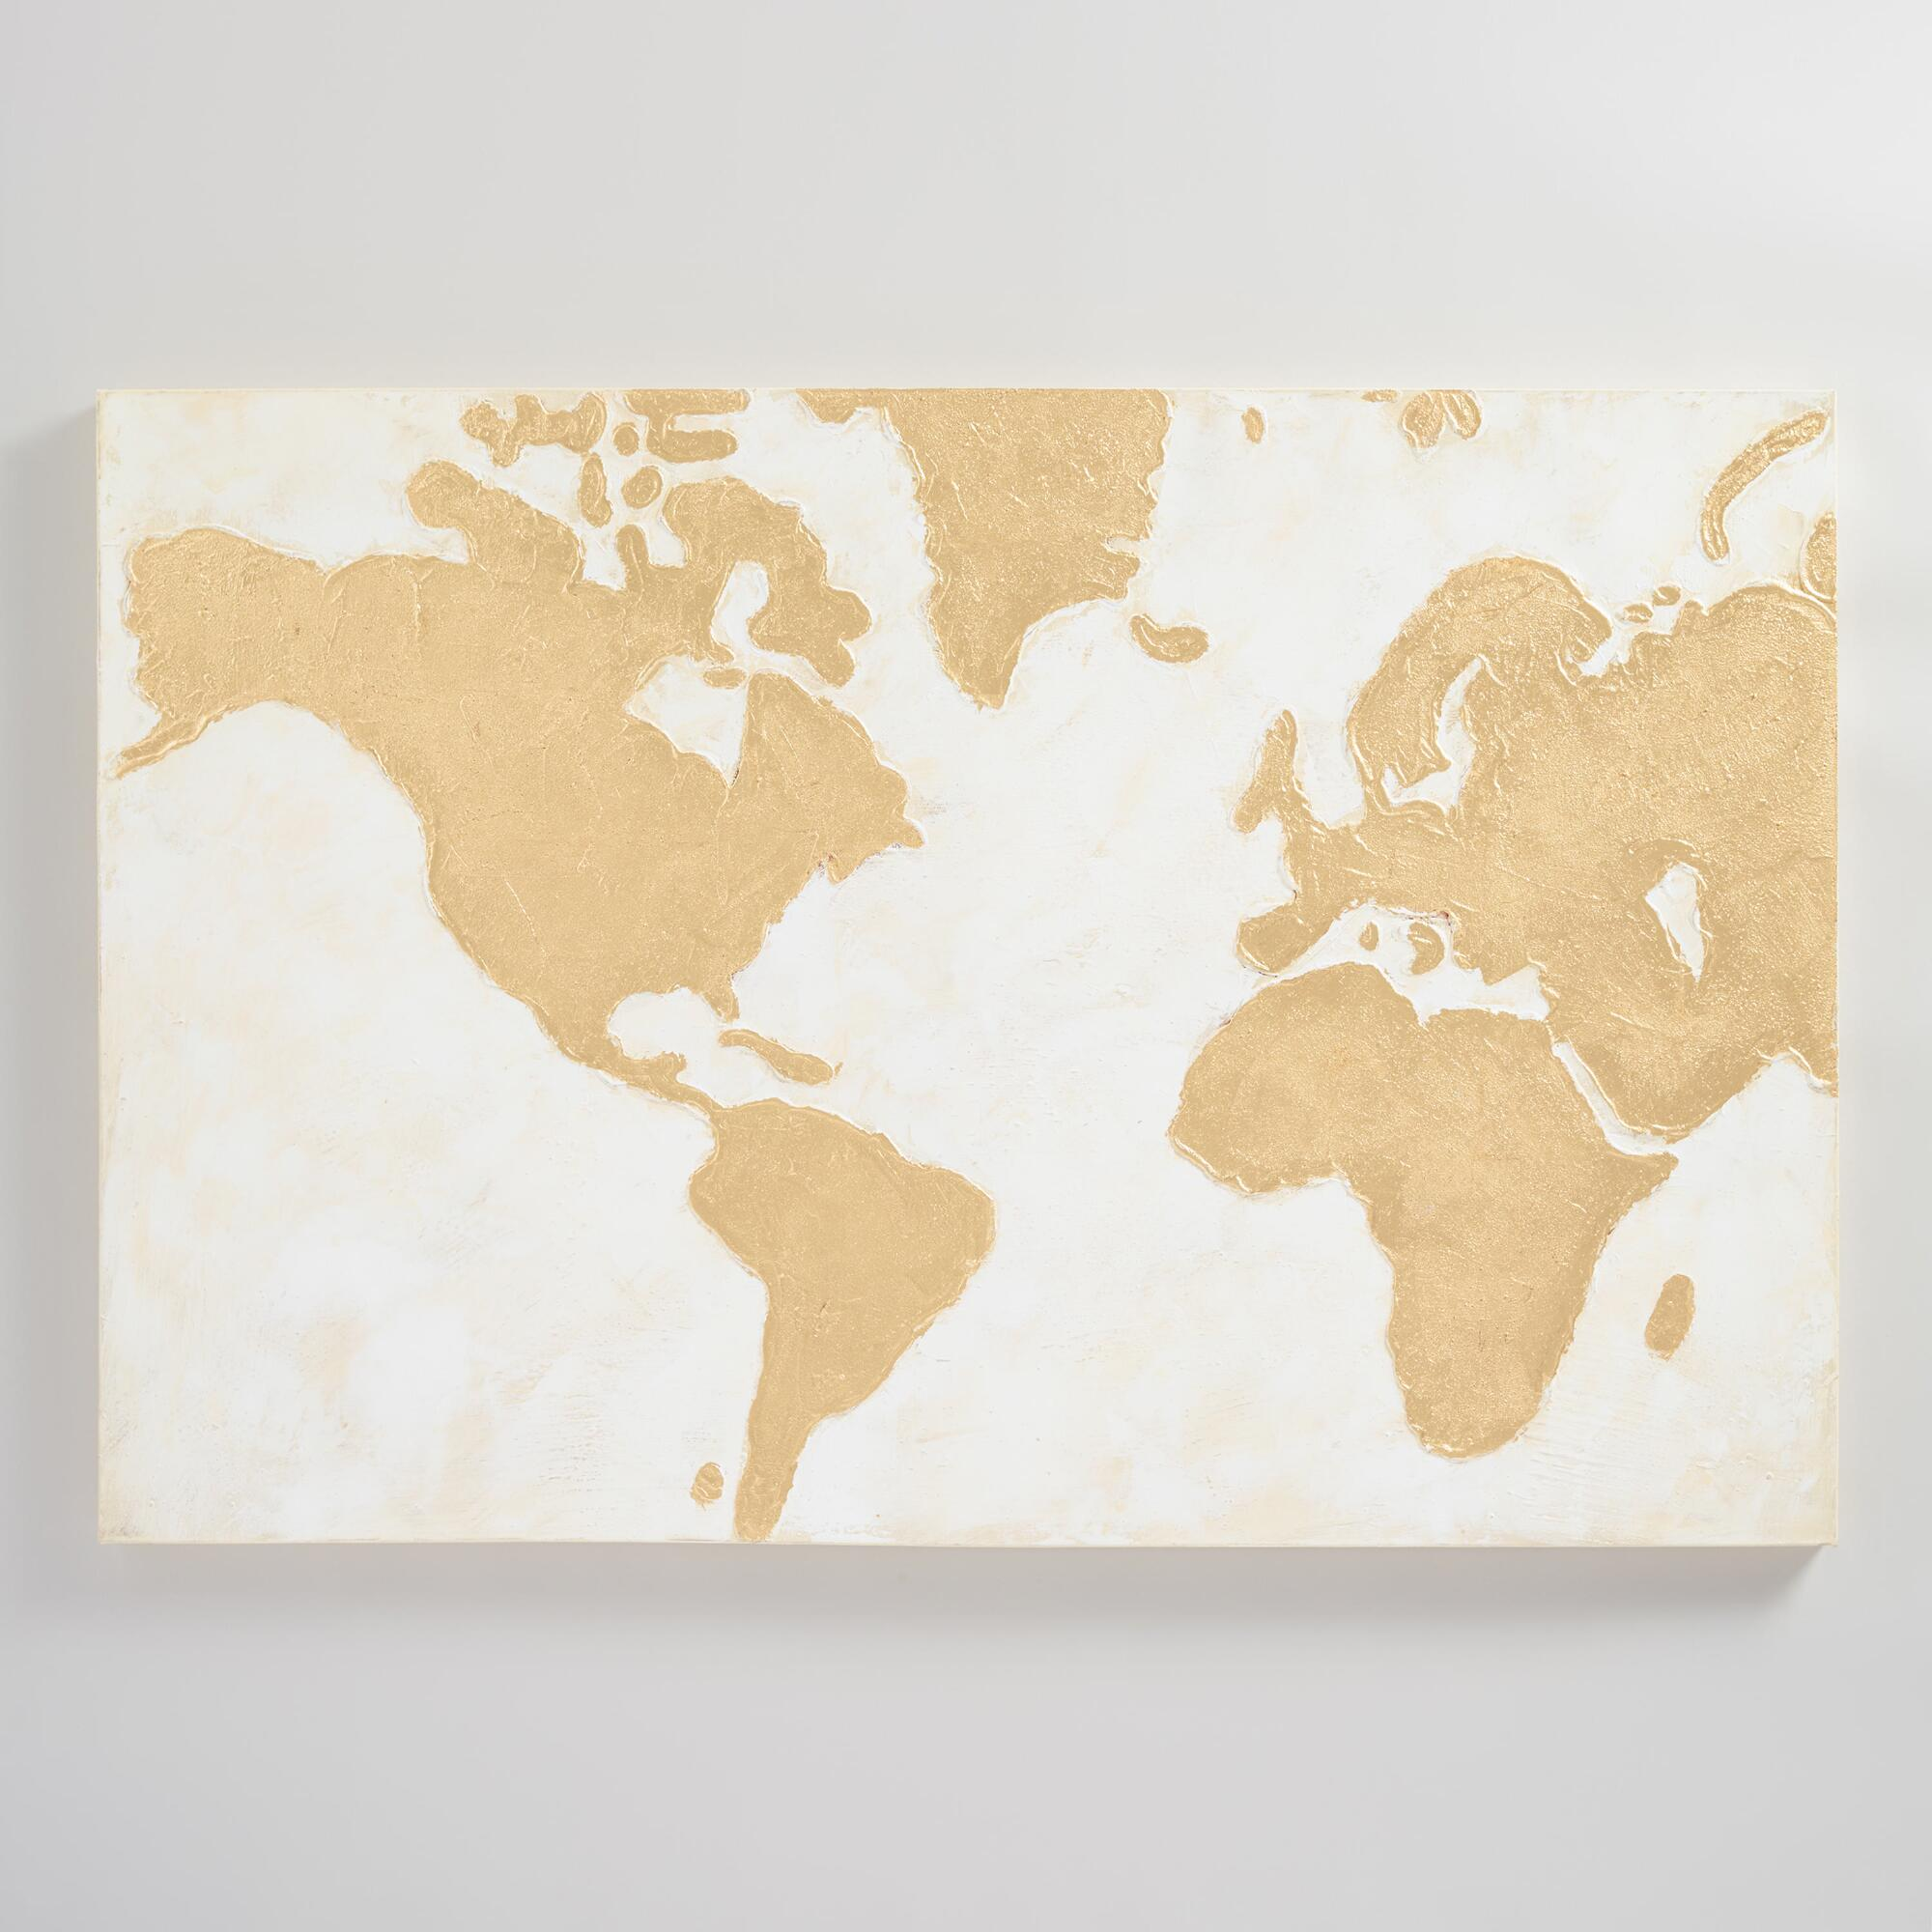 Maps travel wall art world market gilded world map wall art gumiabroncs Gallery